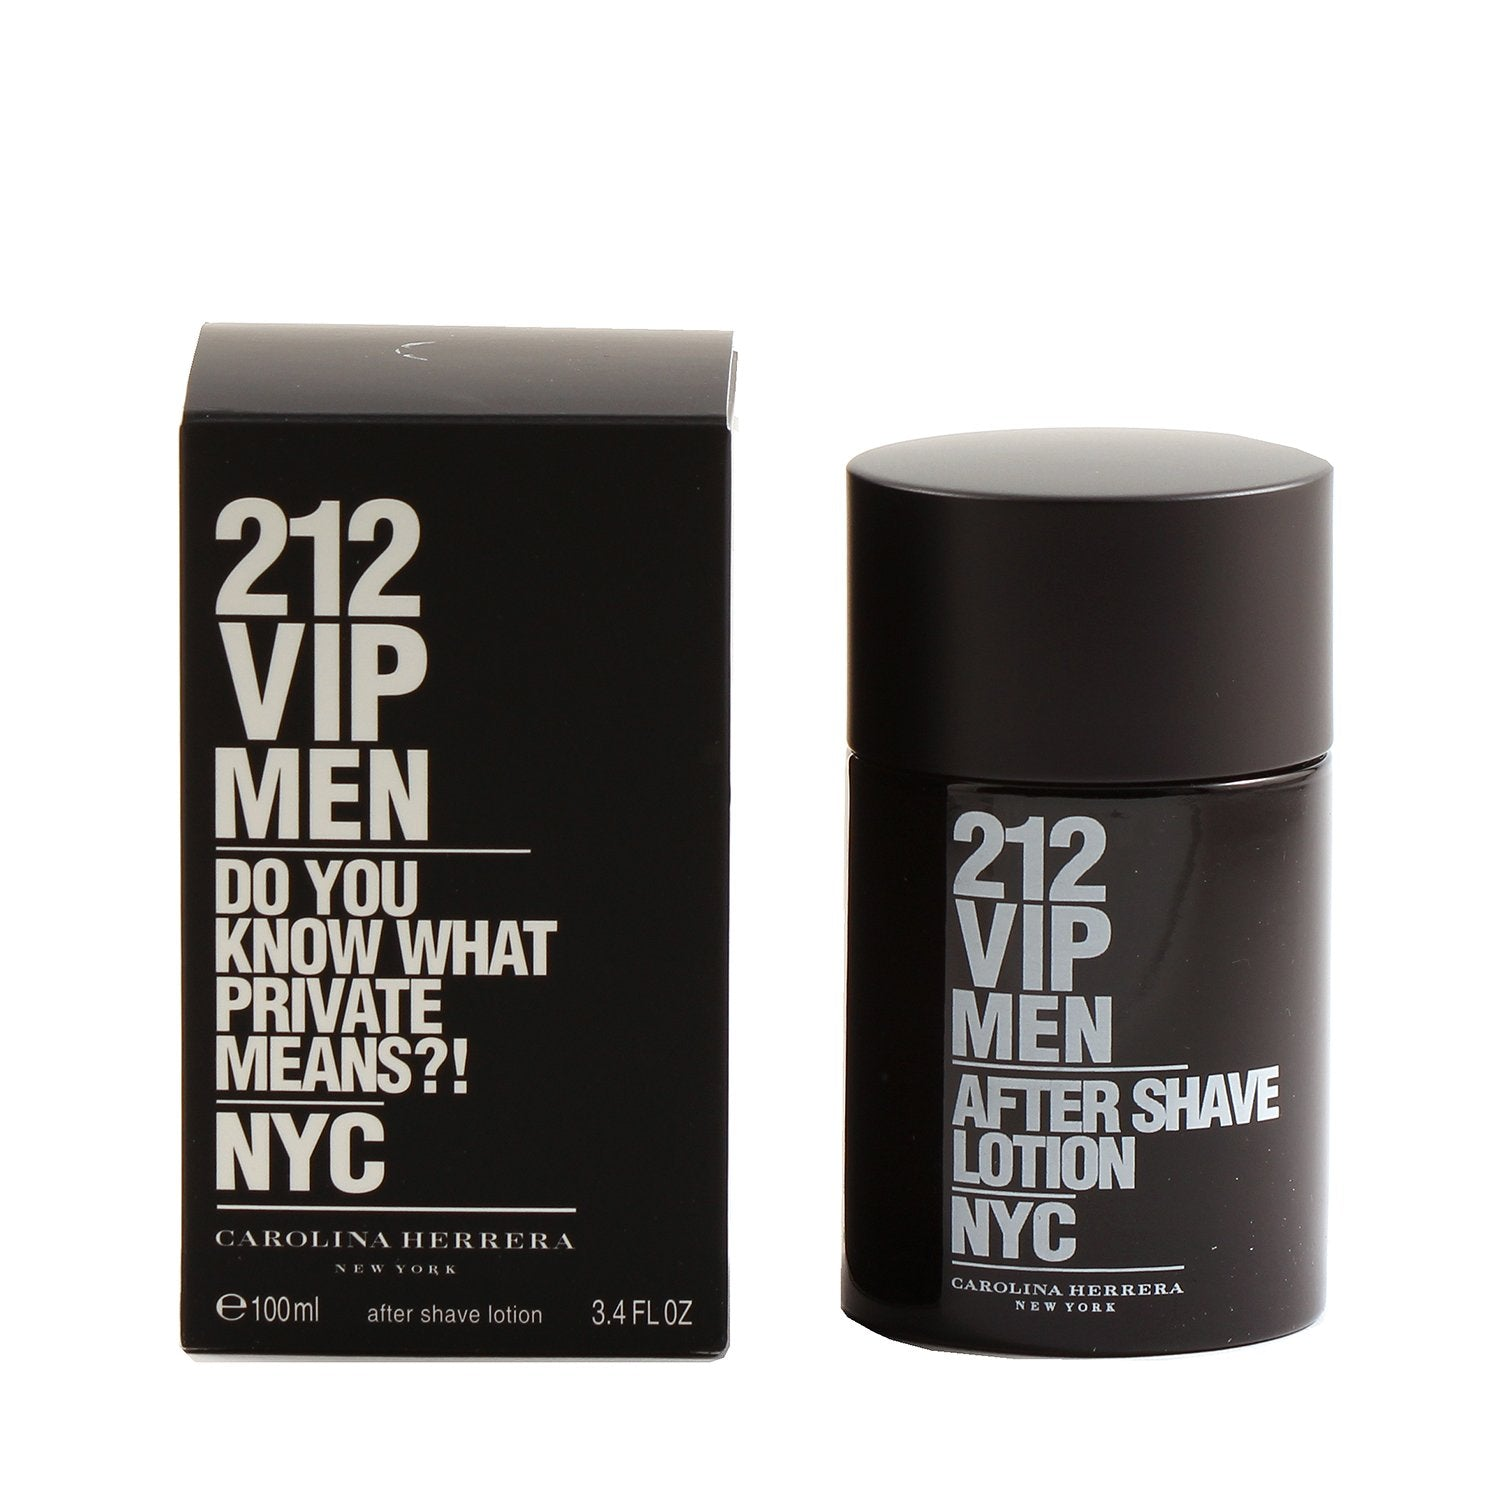 Cologne - 212 VIP MEN BY CAROLINA HERRERA - AFTER SHAVE LOTION, 3.4 OZ